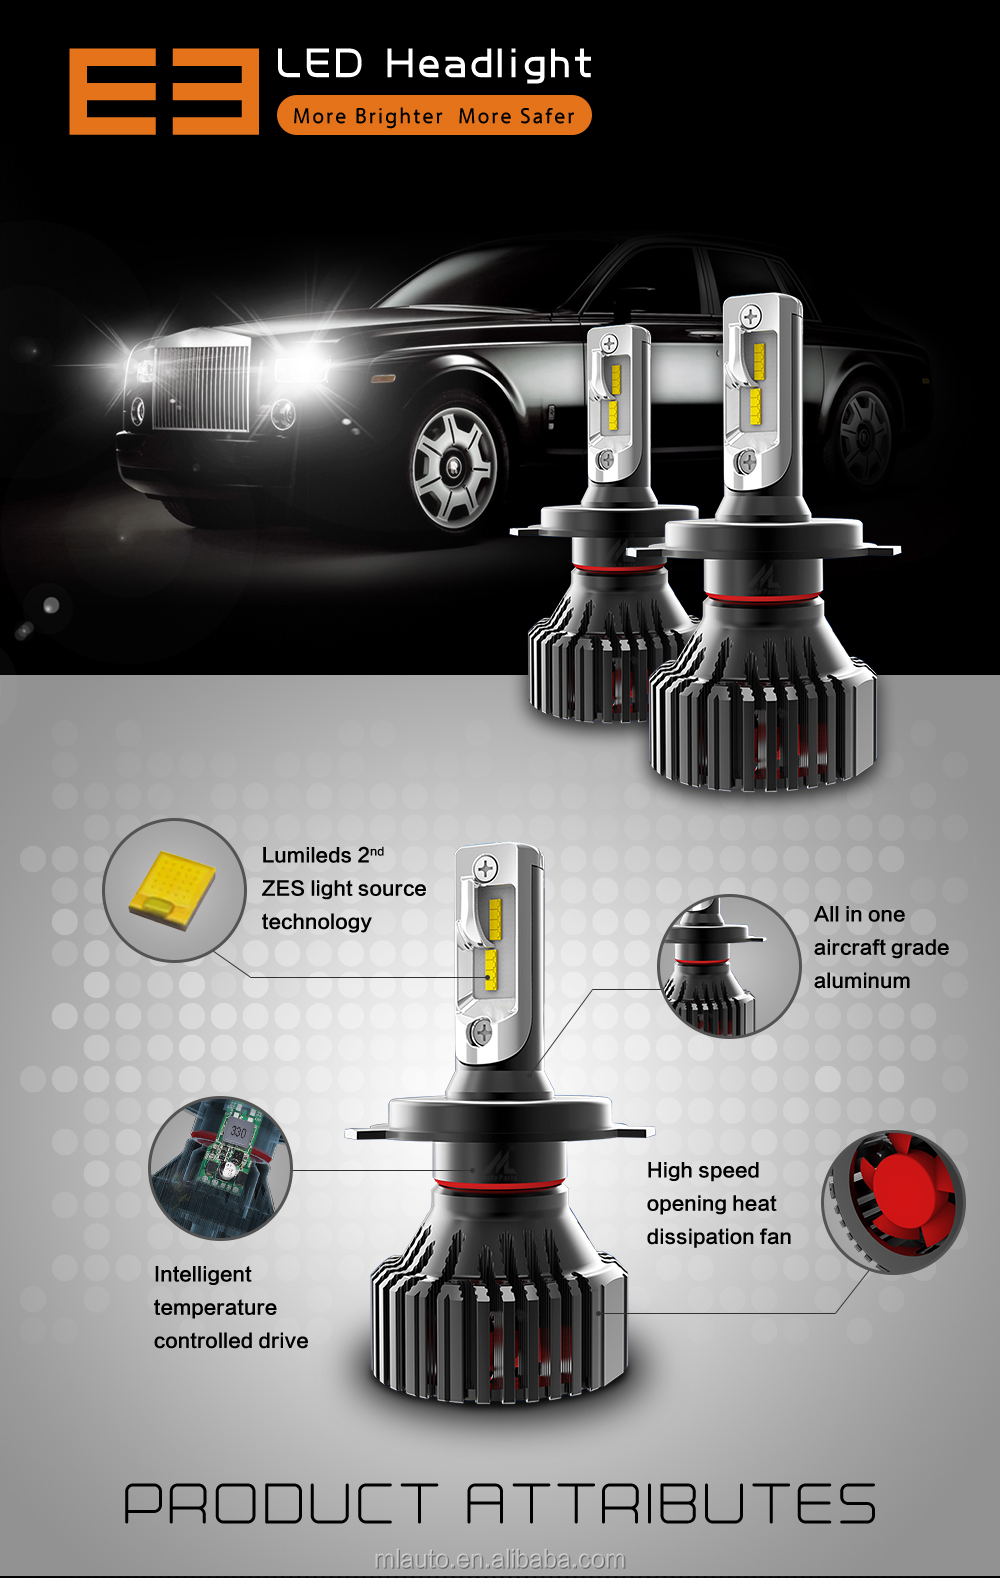 Super bright h4 h7 h11 9005 9006 p16 psx24 psx26 9012 E3 car led headlight bulb kit 8000lm 30w 6500k white